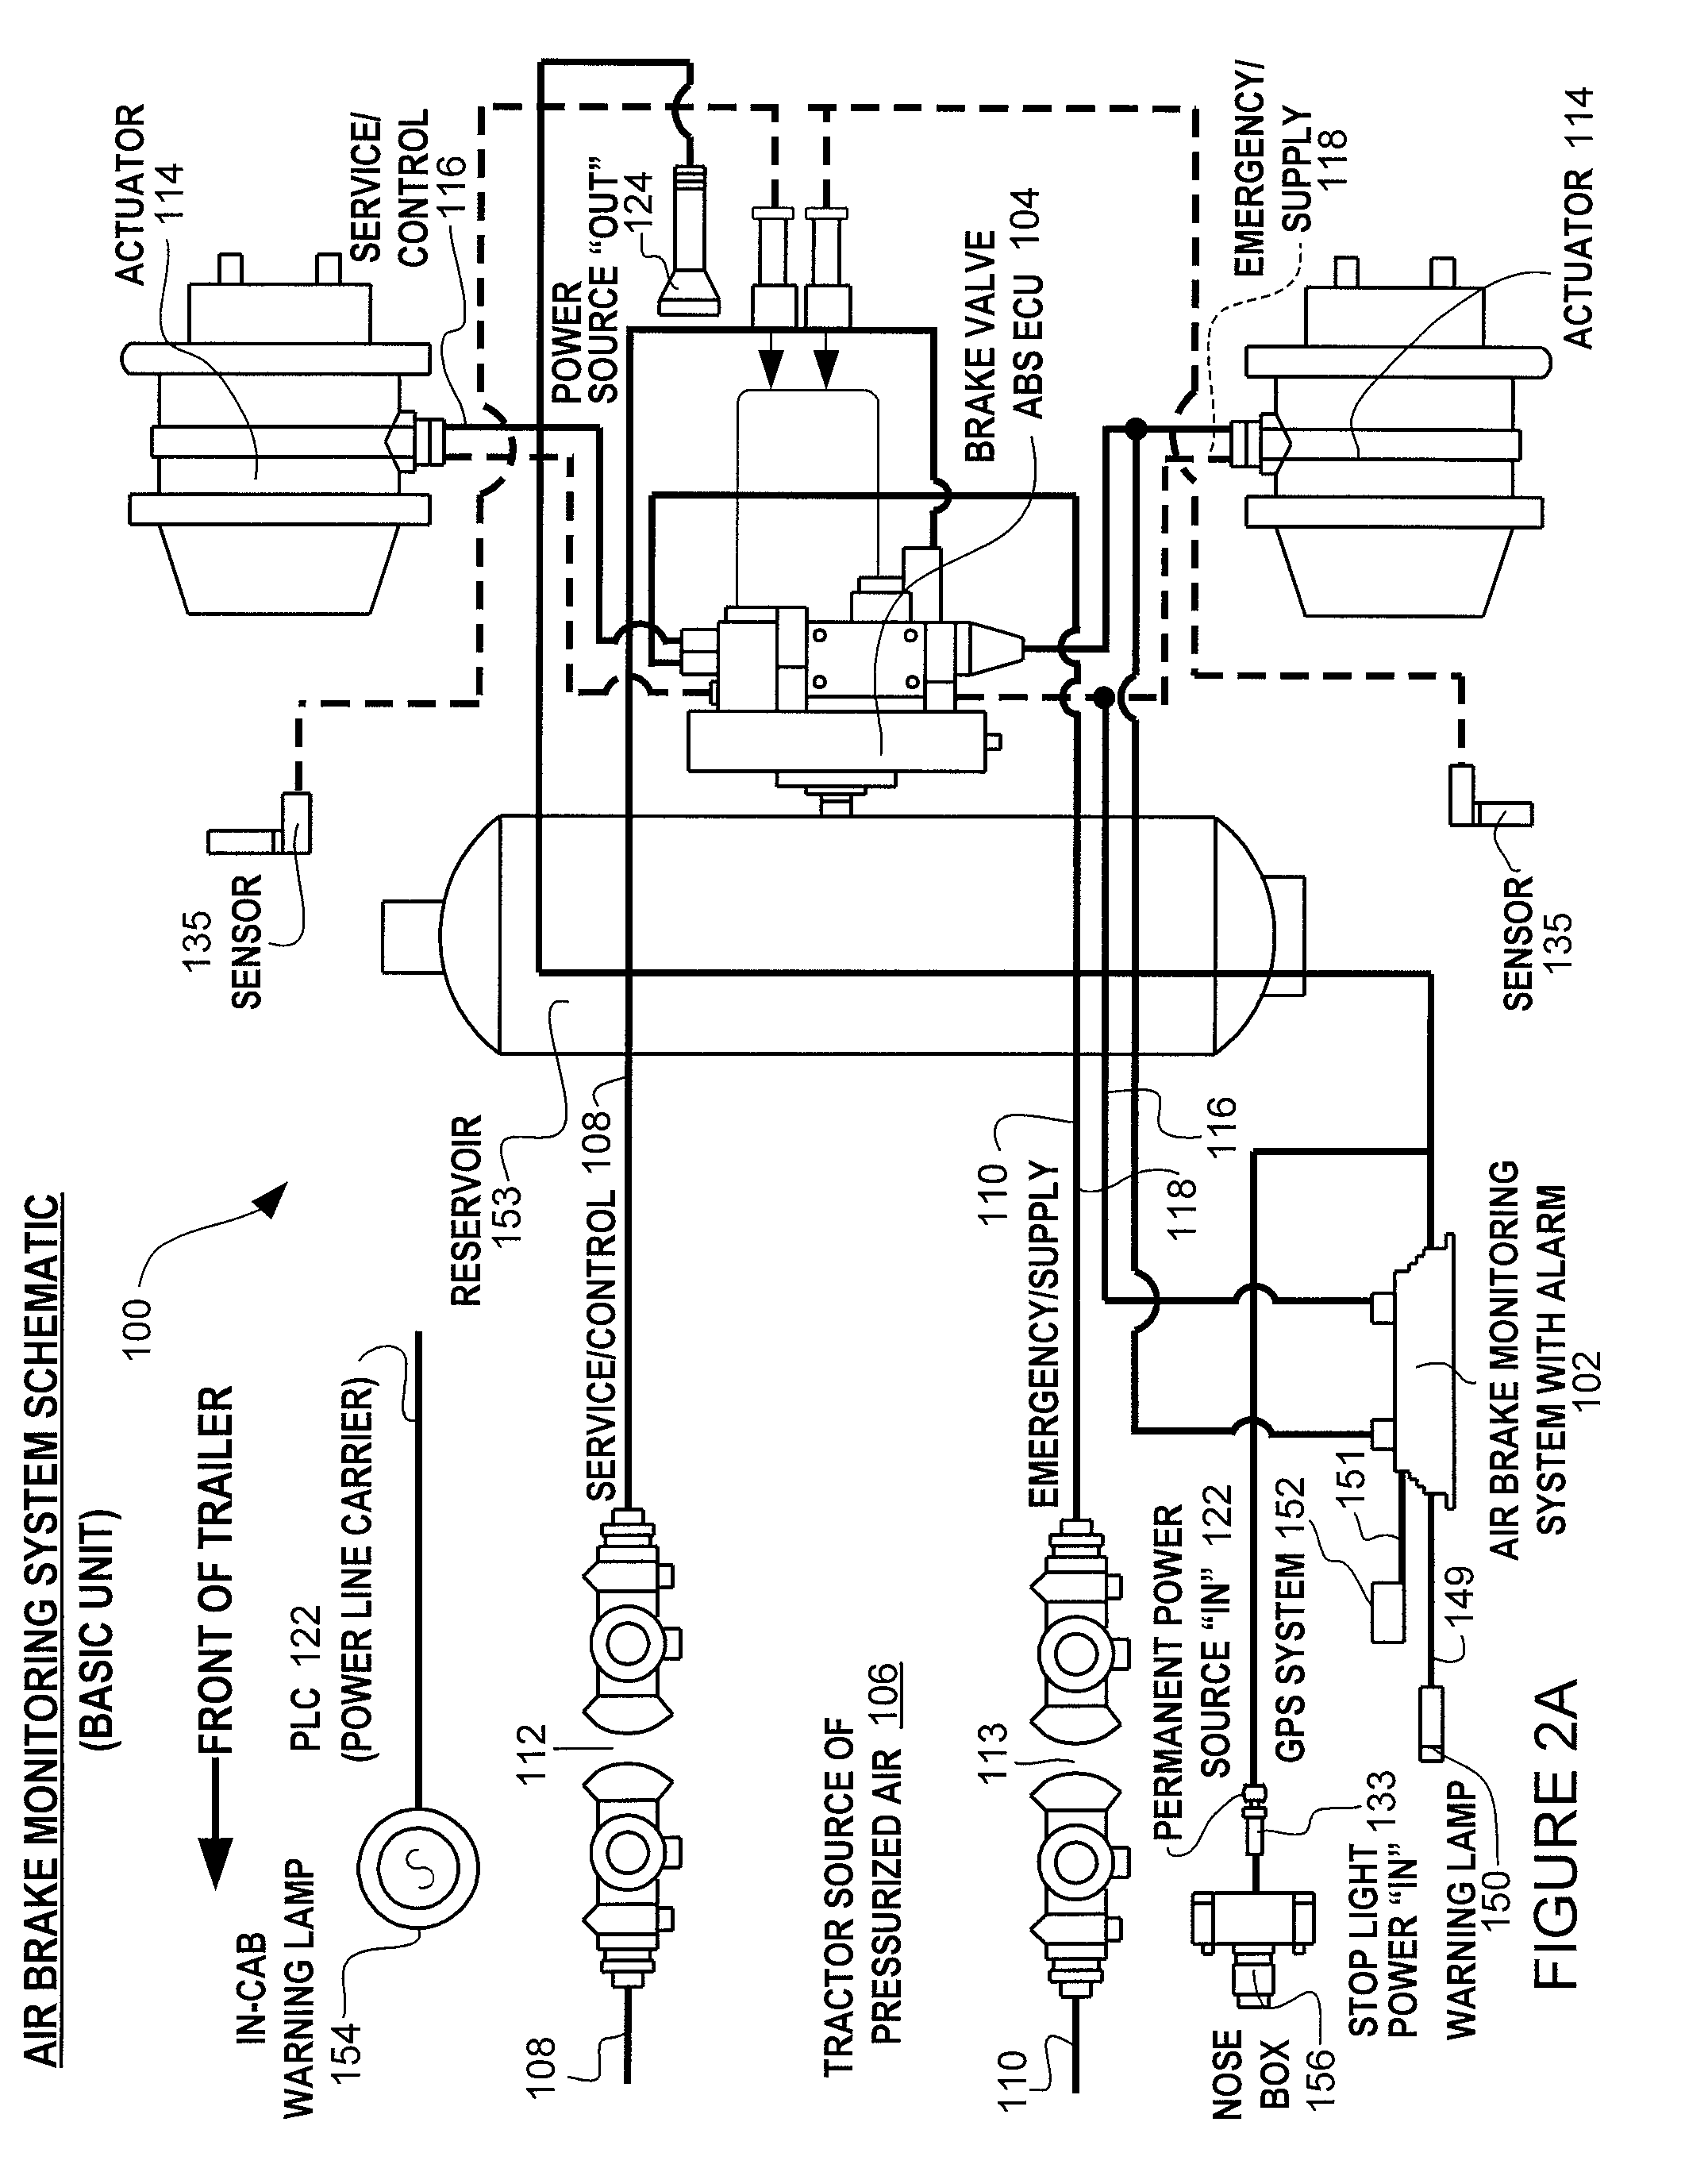 US08204668 20120619 D00003?resize\\\\\=665%2C845\\\\\&ssl\\\\\=1 1995 buick riviera wiring diagrams 1984 buick riviera wiring 95 Buick Riviera Wiring-Diagram at bakdesigns.co